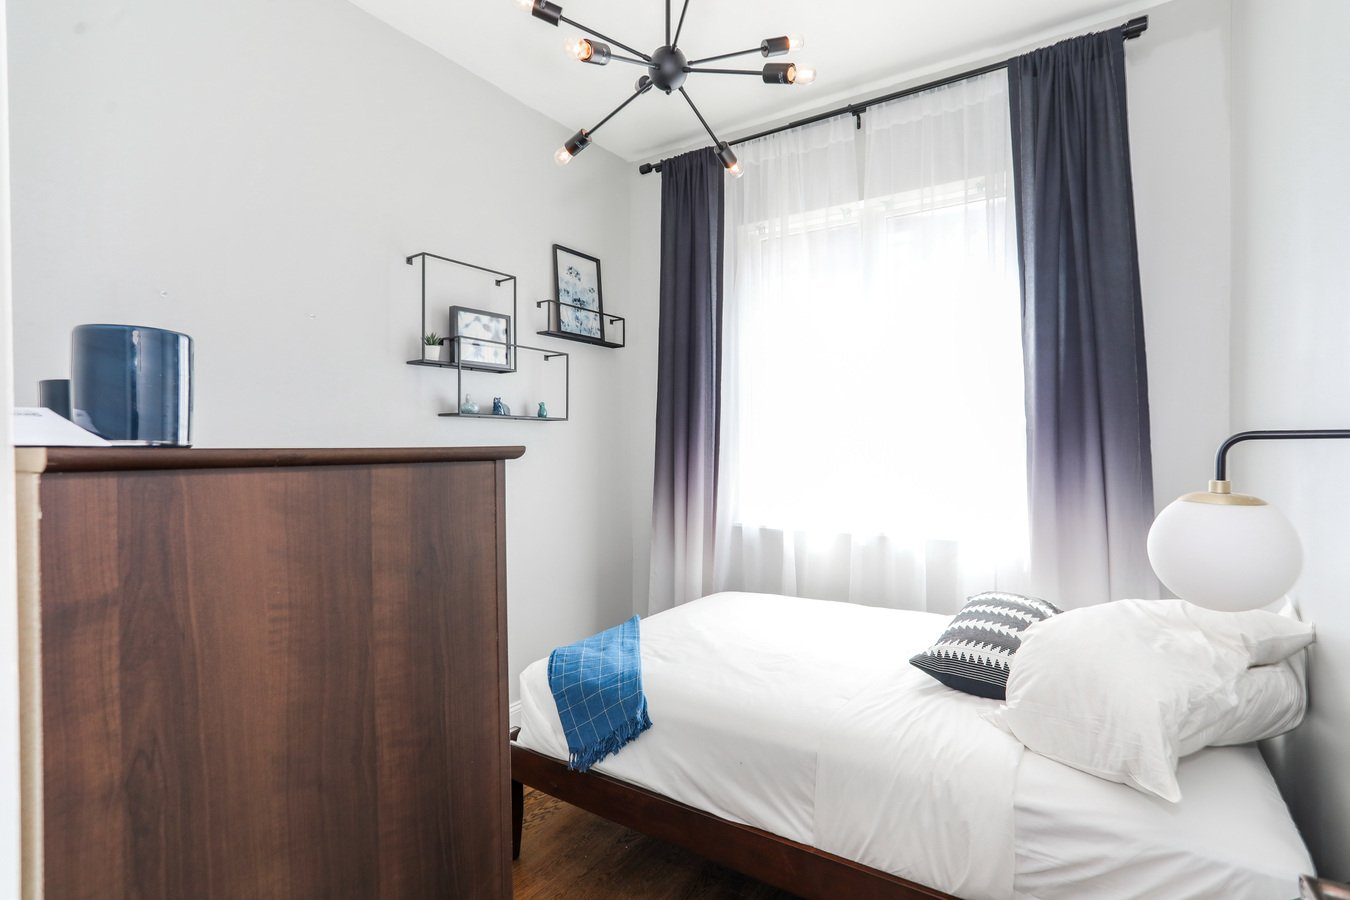 1 Bedroom 1 Bathroom Apartment for rent at Private Furnished Bedroom In Shared Apartment. Charming 6 Bed 2.5 Bath, Flexible Lease in New York, NY